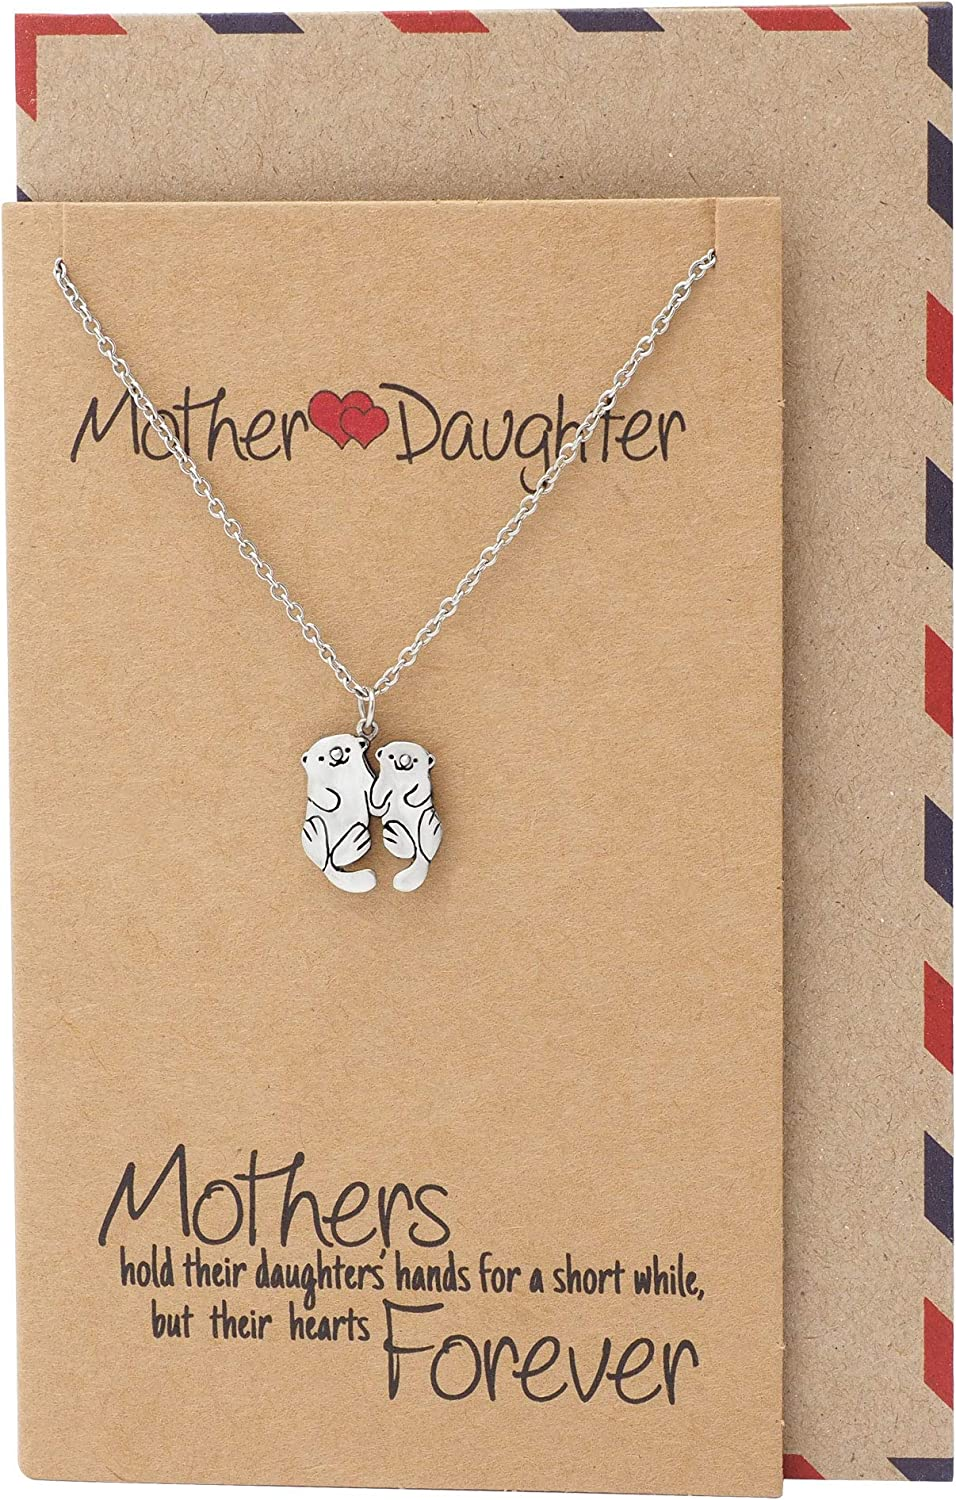 Quan Jewelry Mother and Daughter Otter Necklace, Gifts for Mom, Mother's Day, with Inspirational Quotes